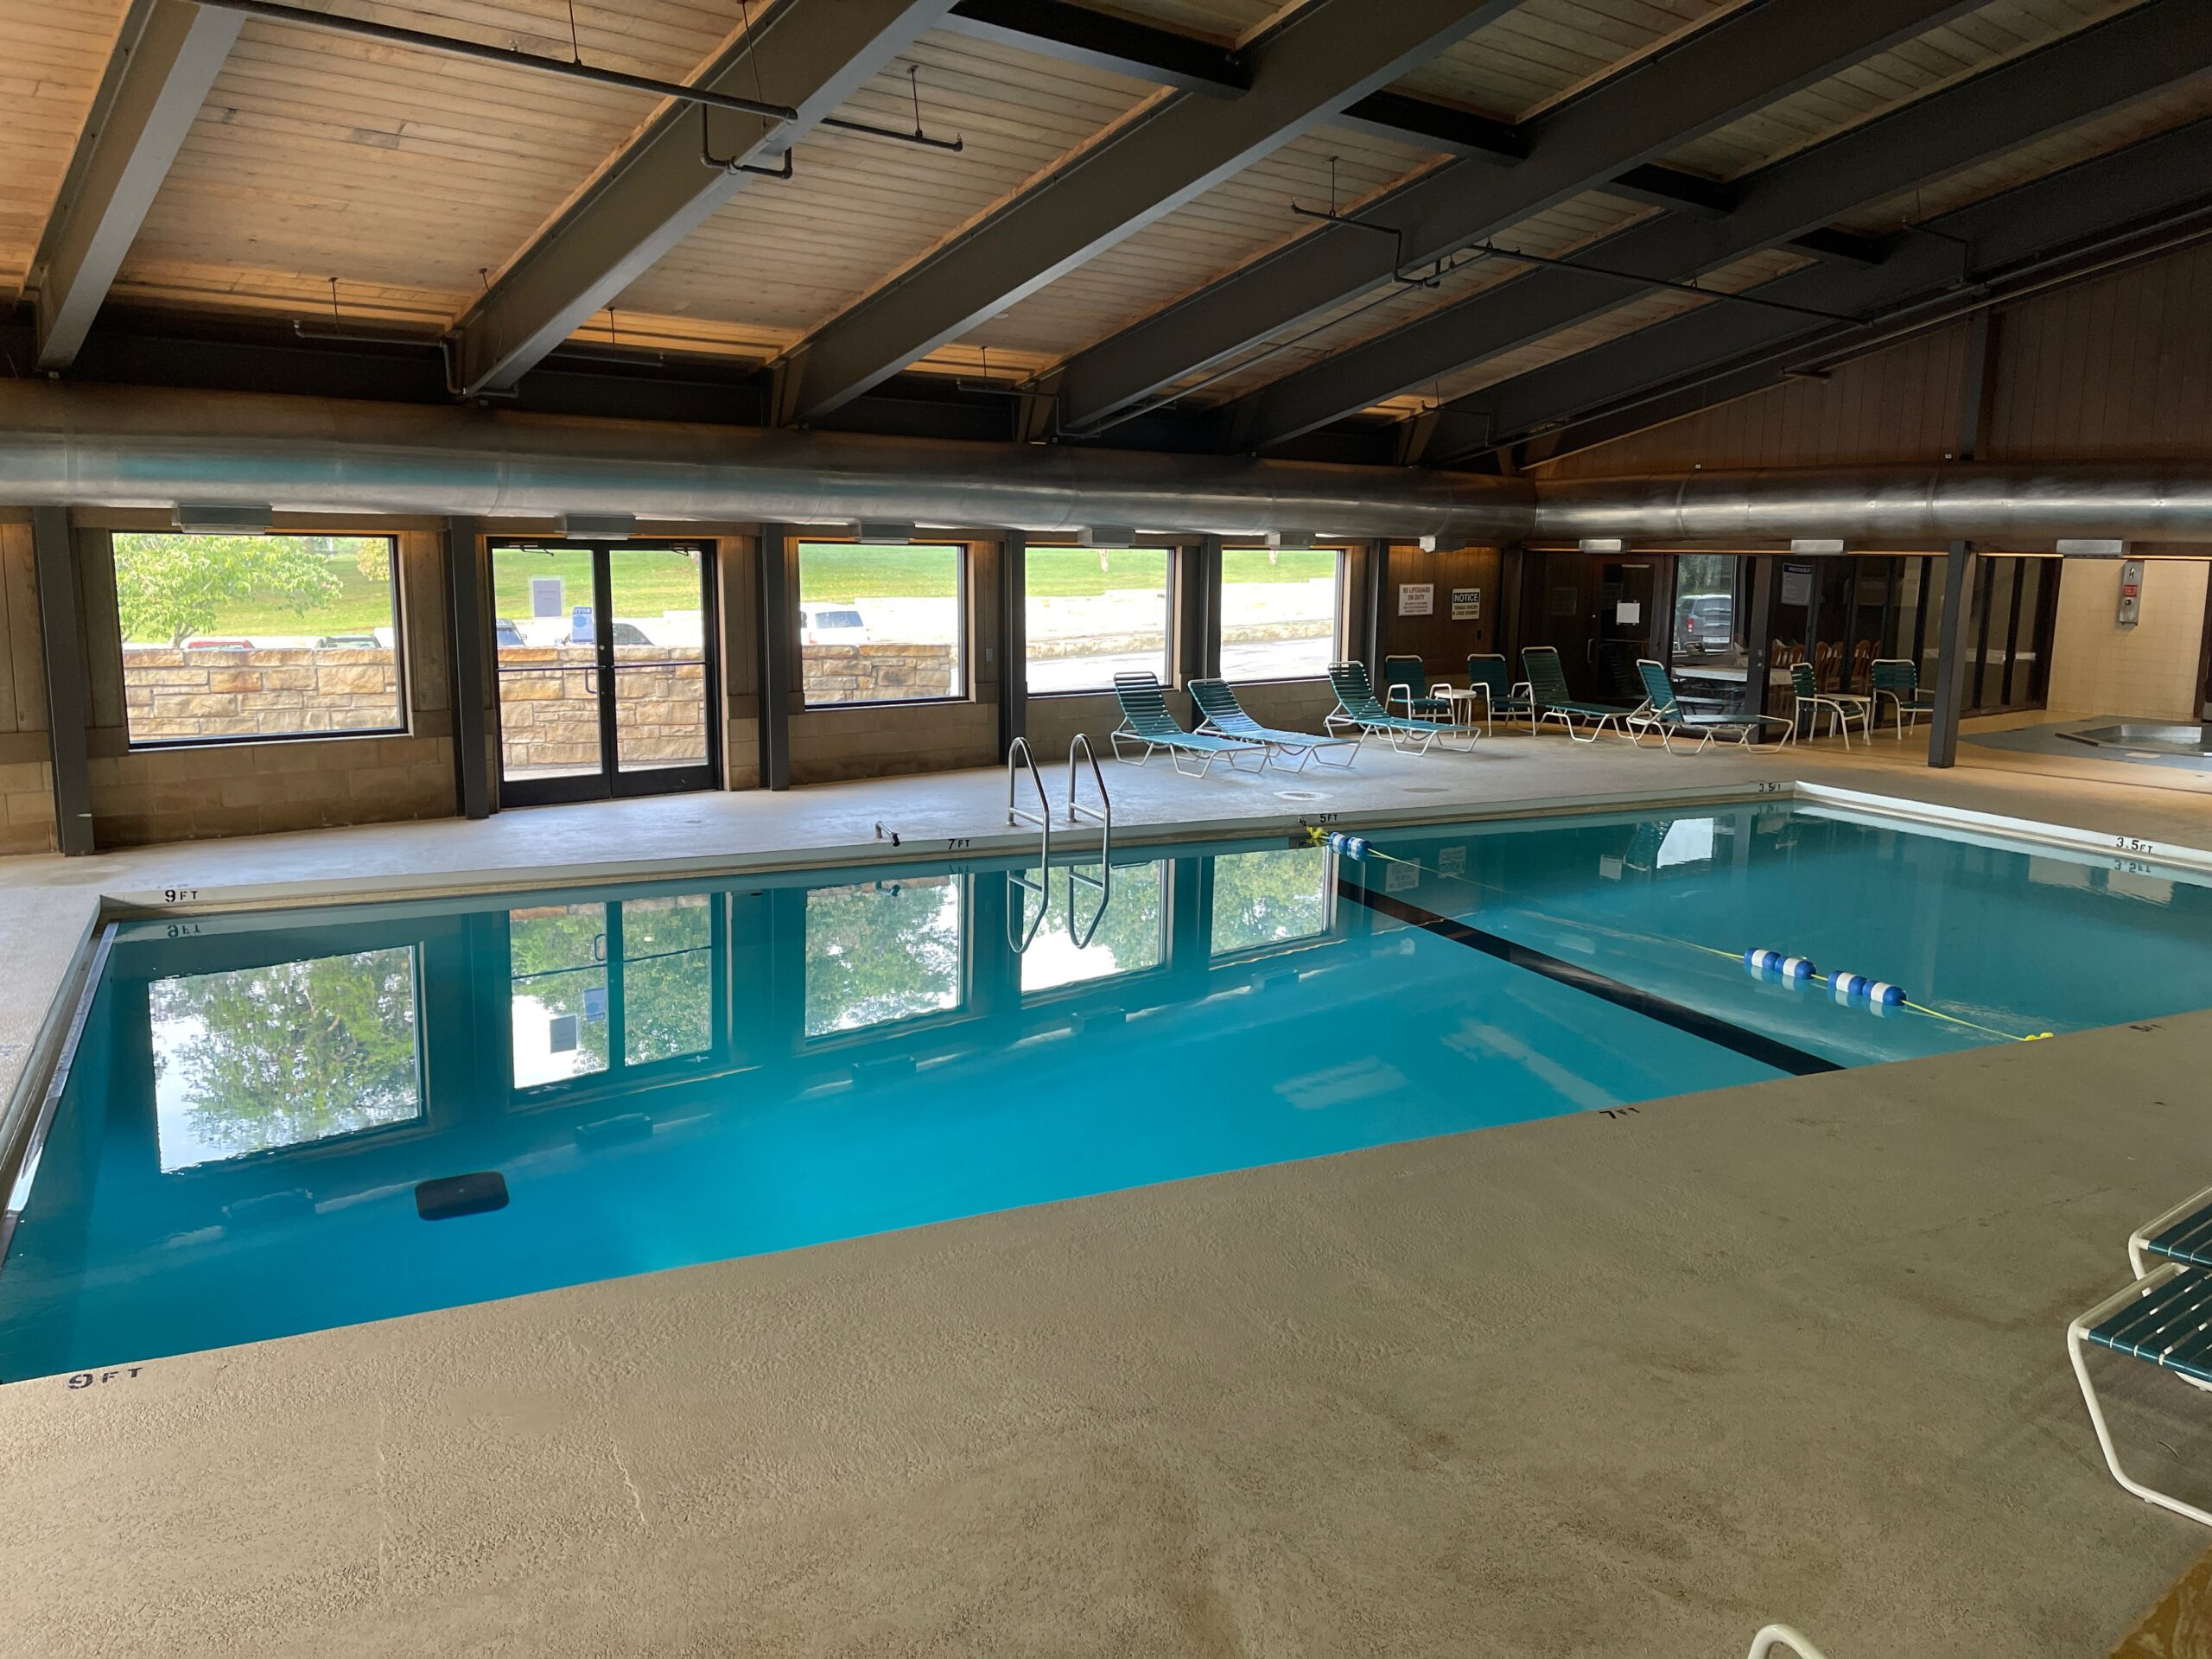 Small Towns in KY - Lure Lodge pool